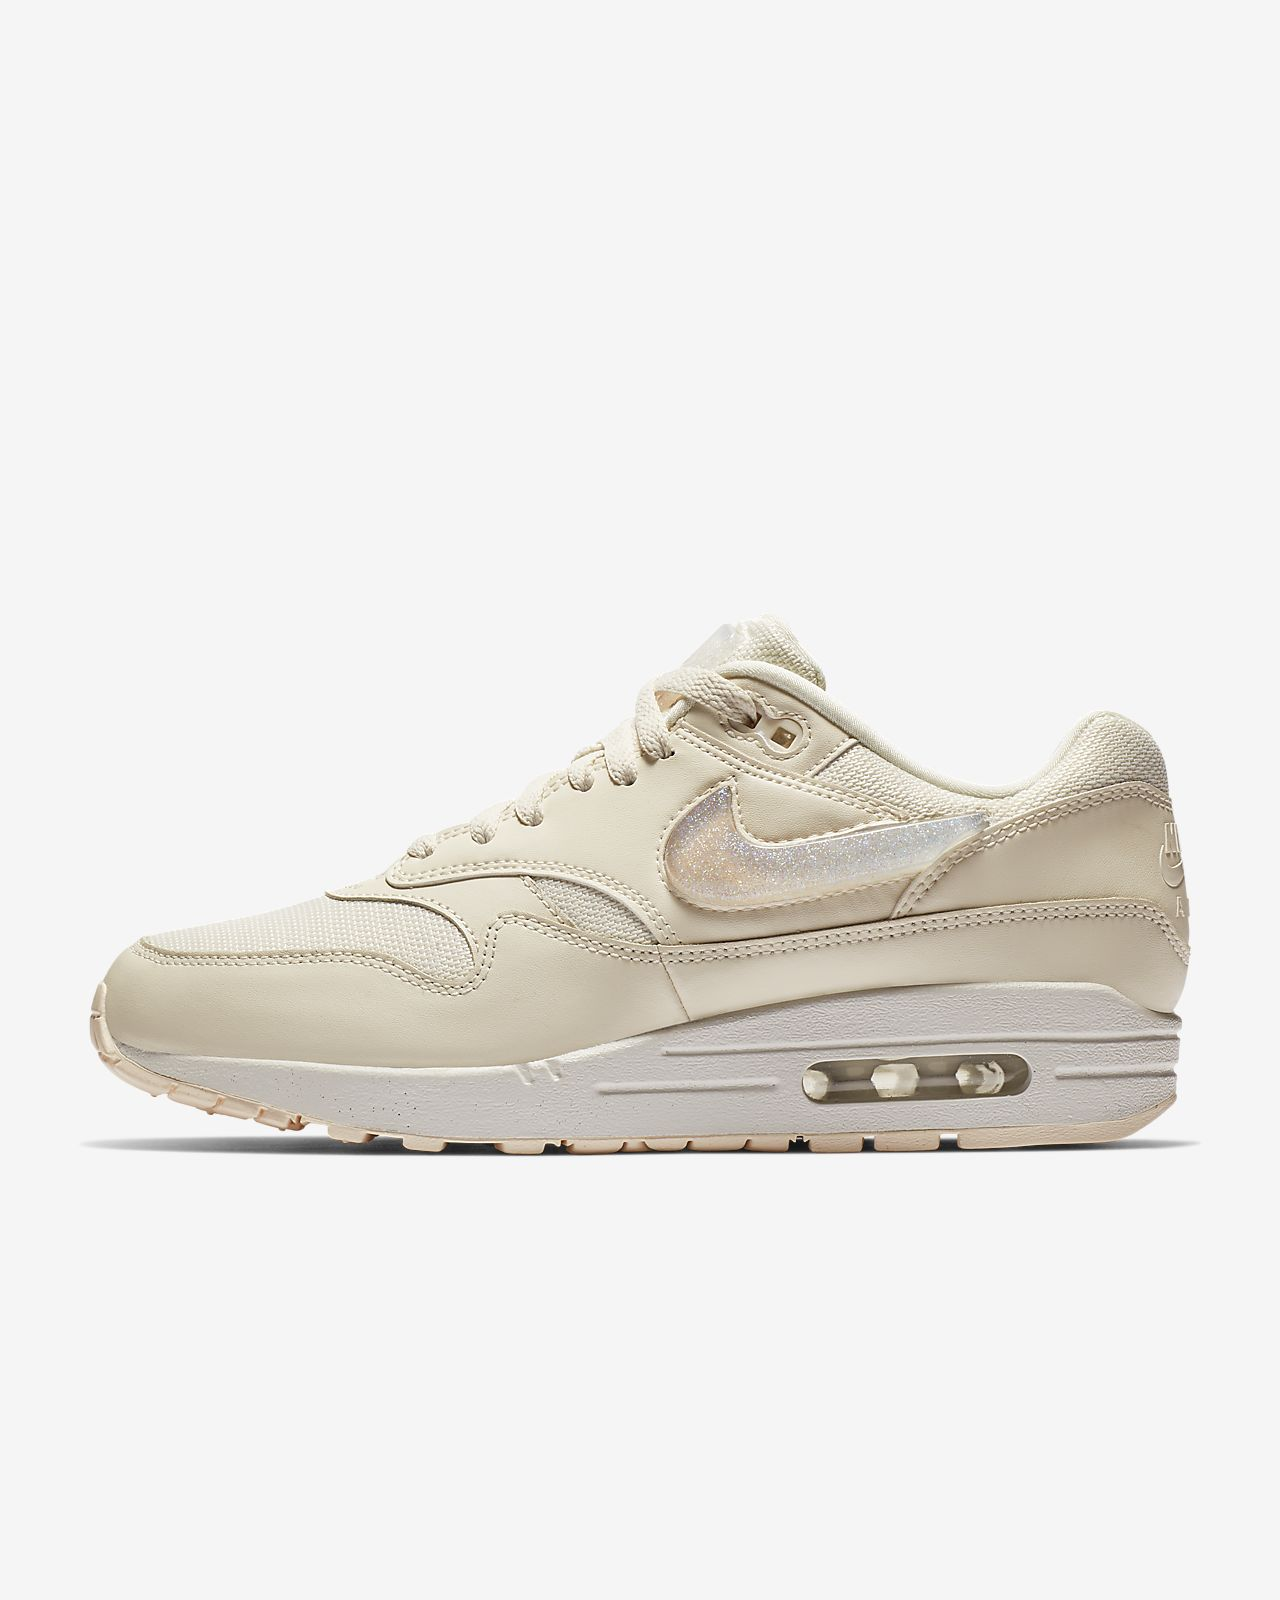 c6701c41be Nike Air Max 1 Premium Women's Shoe. Nike.com